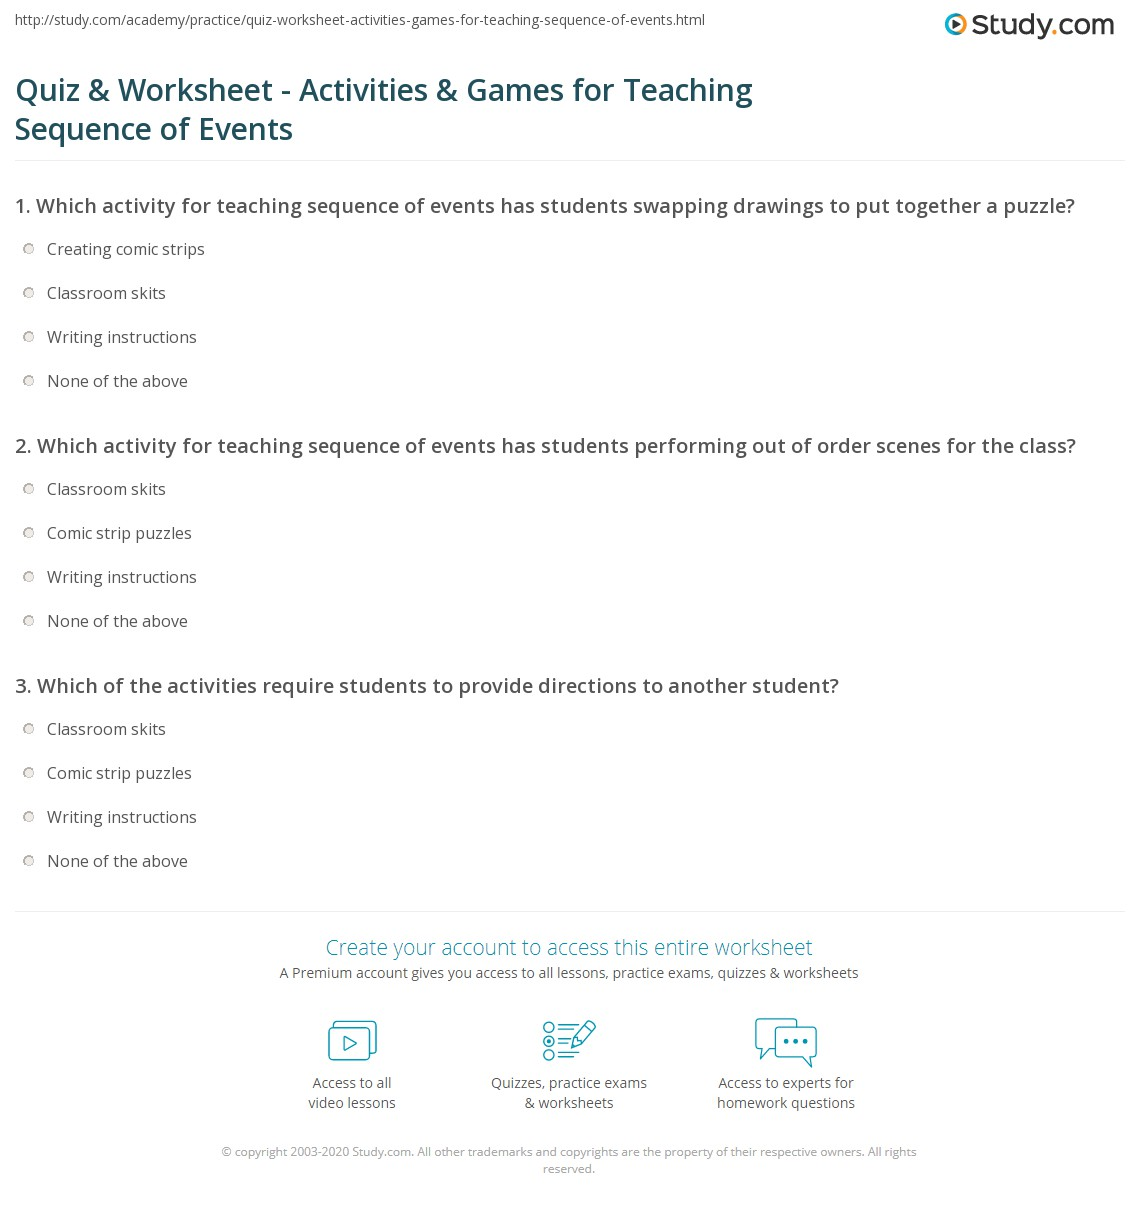 quiz worksheet activities games for teaching sequence of events. Black Bedroom Furniture Sets. Home Design Ideas